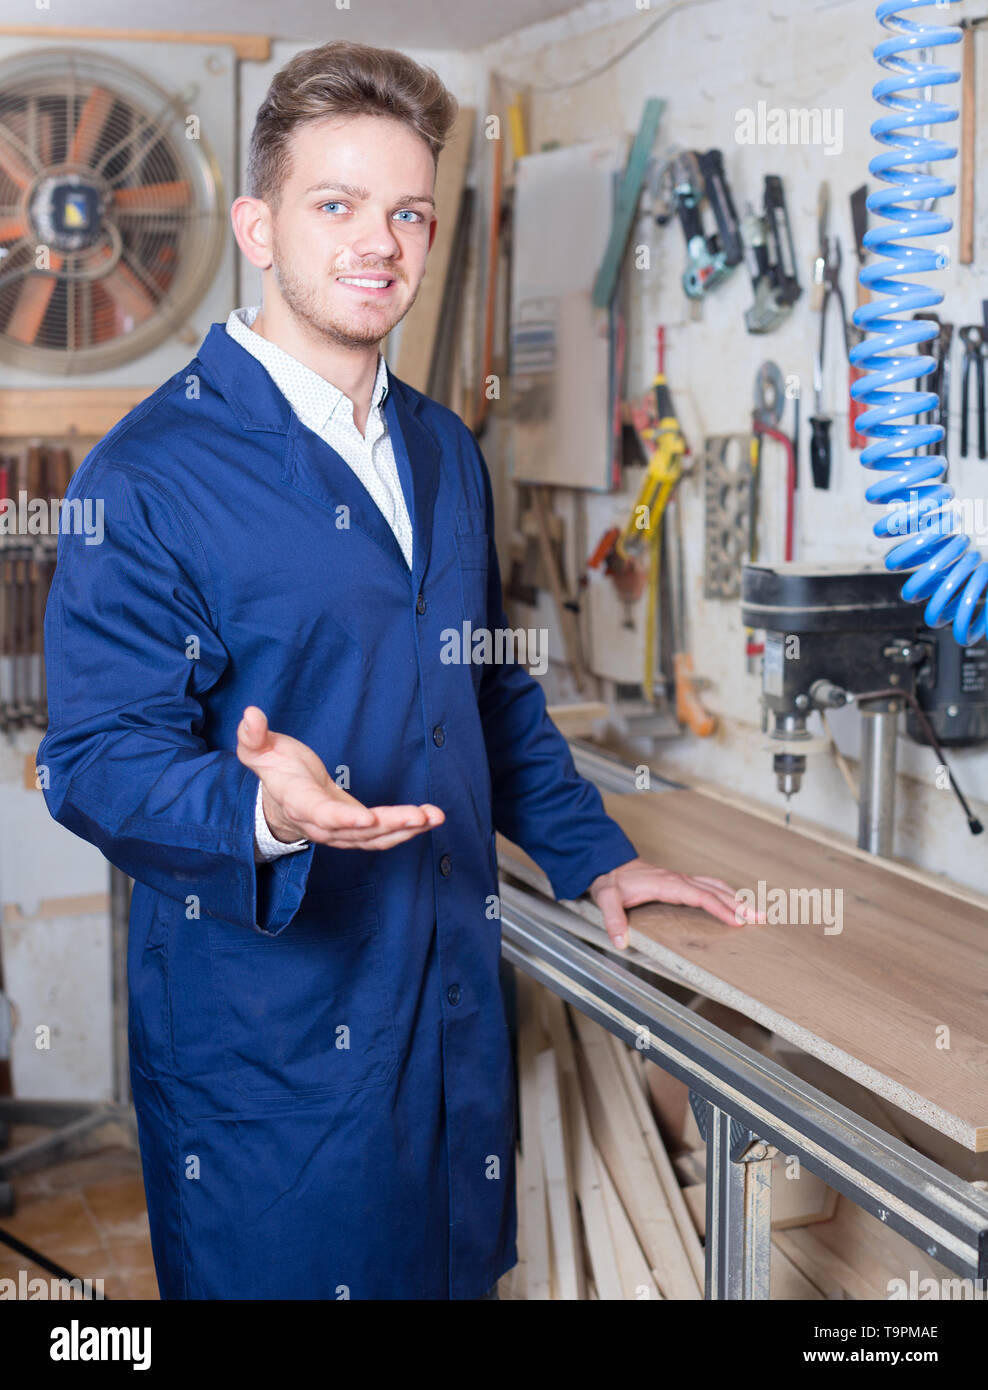 Smiling woodworker practising his skills with milling cutter at workshop - Stock Image